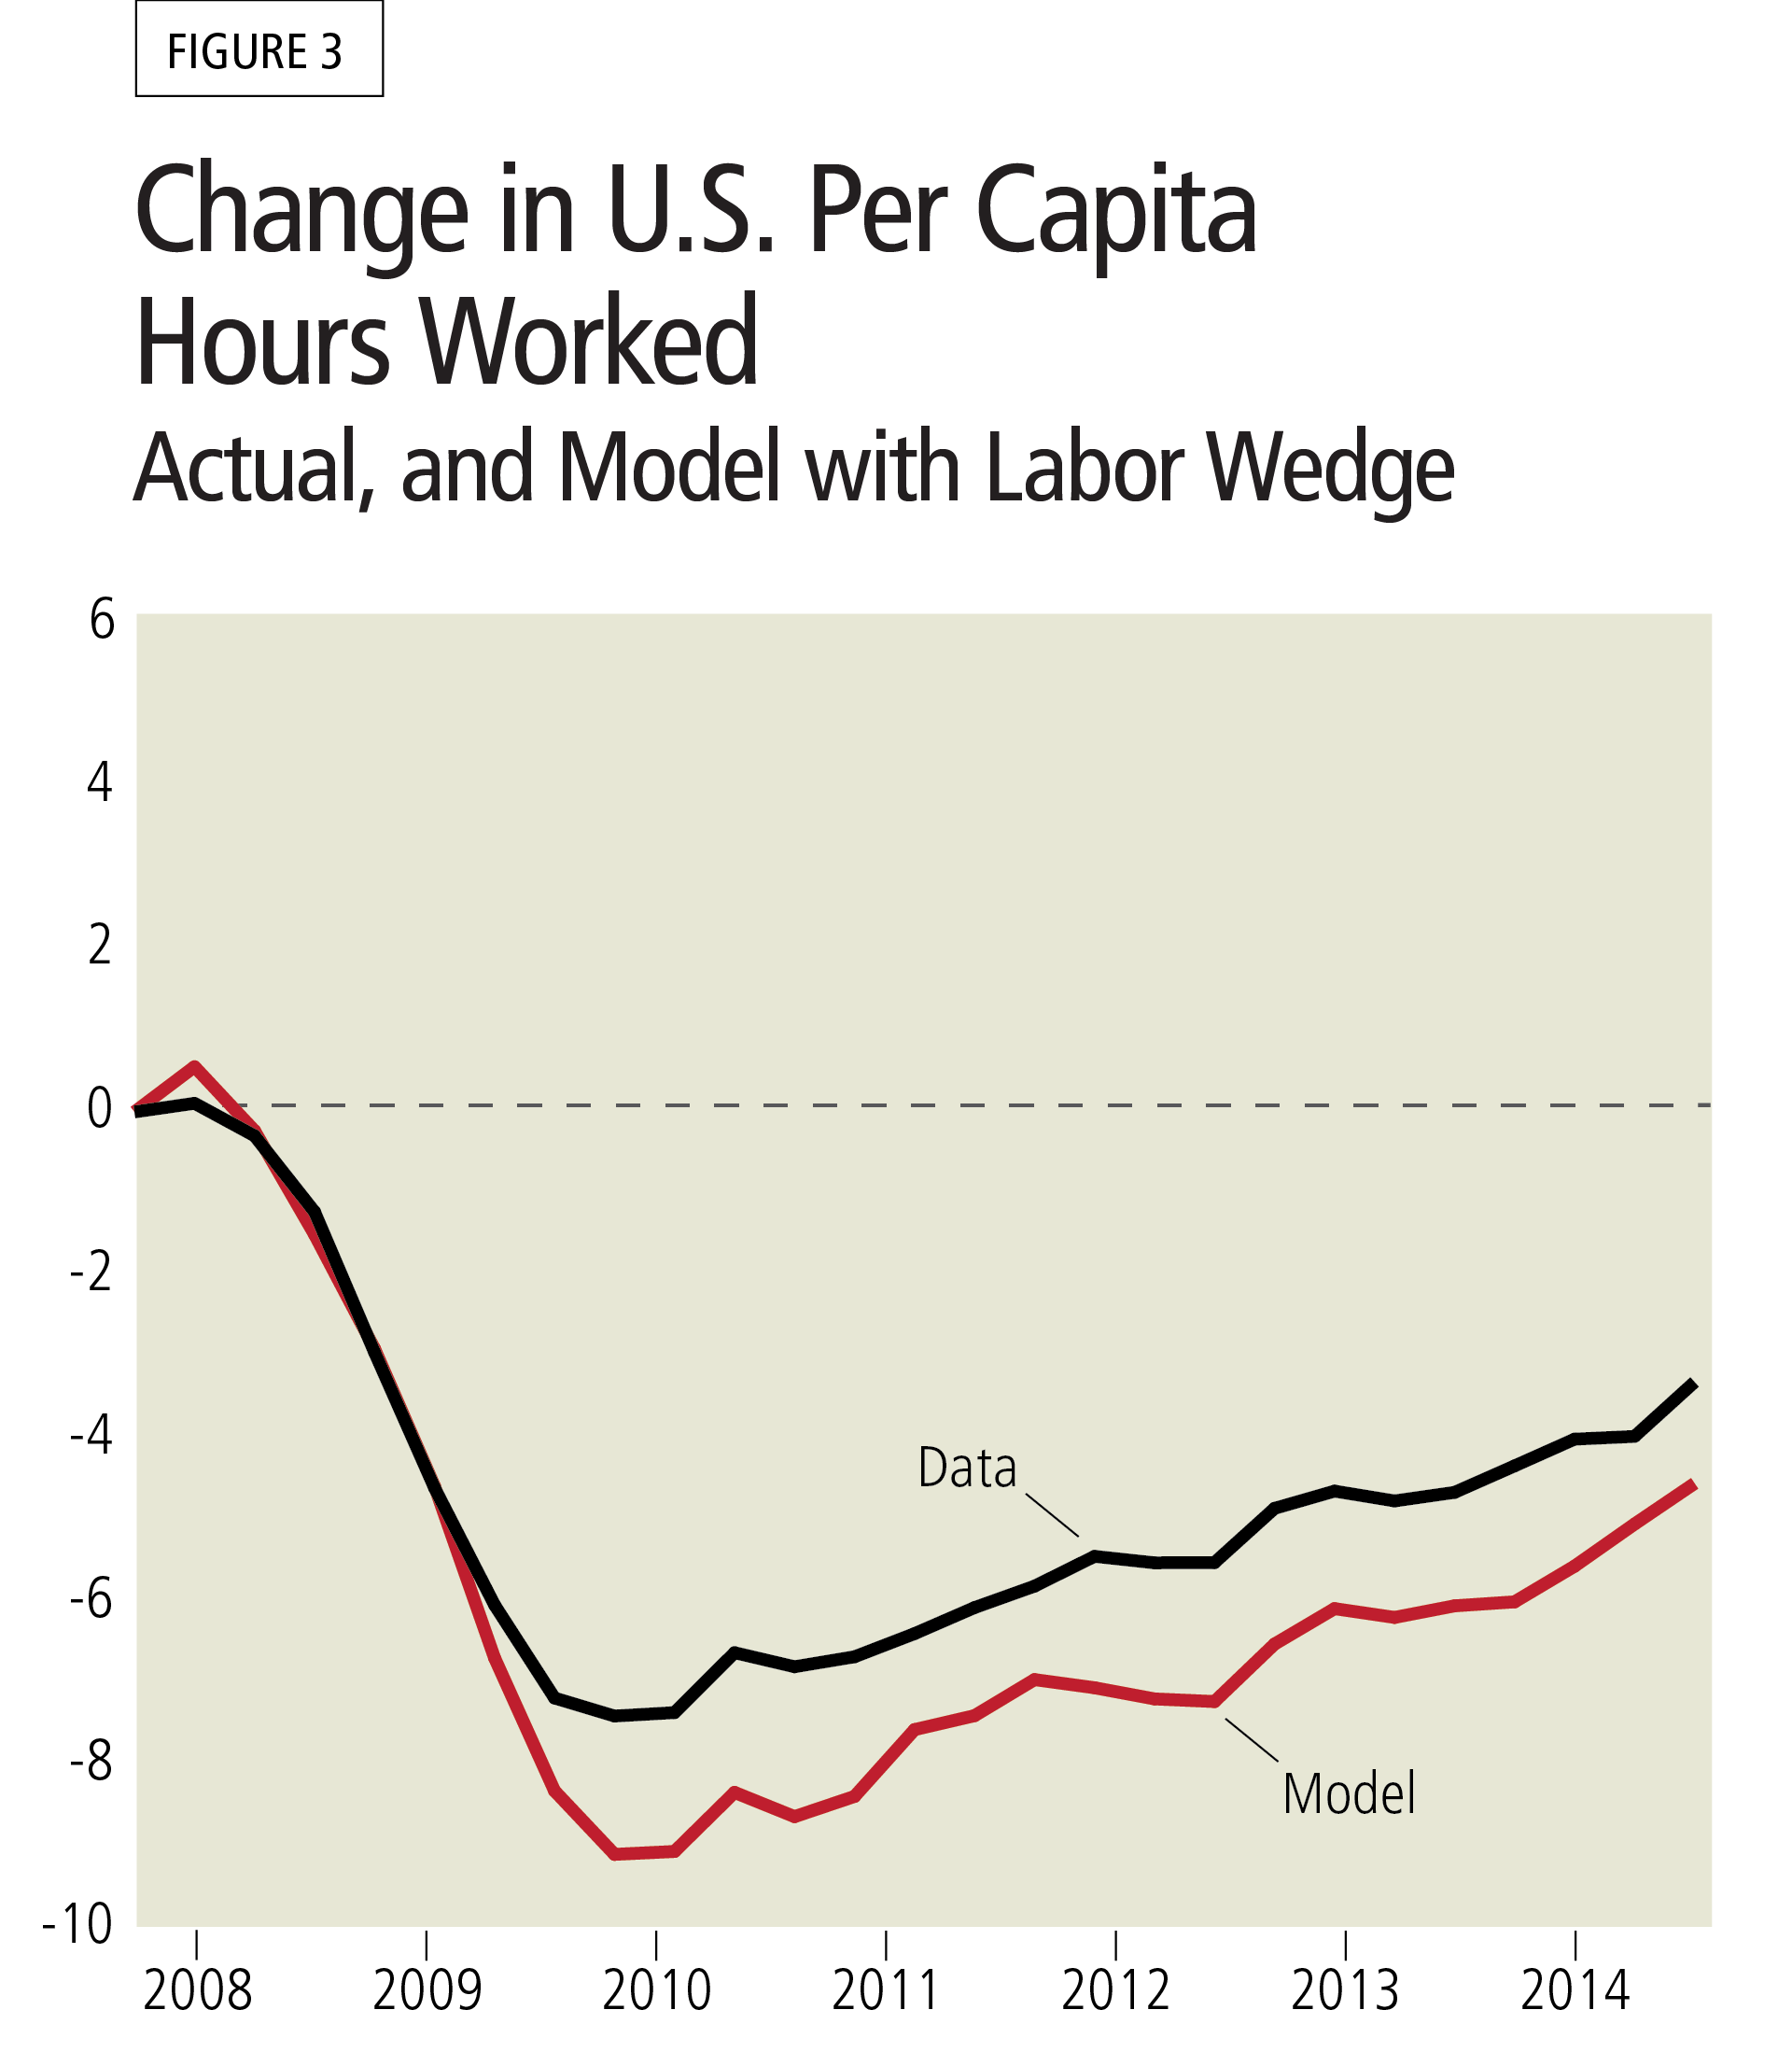 Figure 3: Change in U.S. Per Capita Hours Worked - Actual, and Model with Labor Wedge